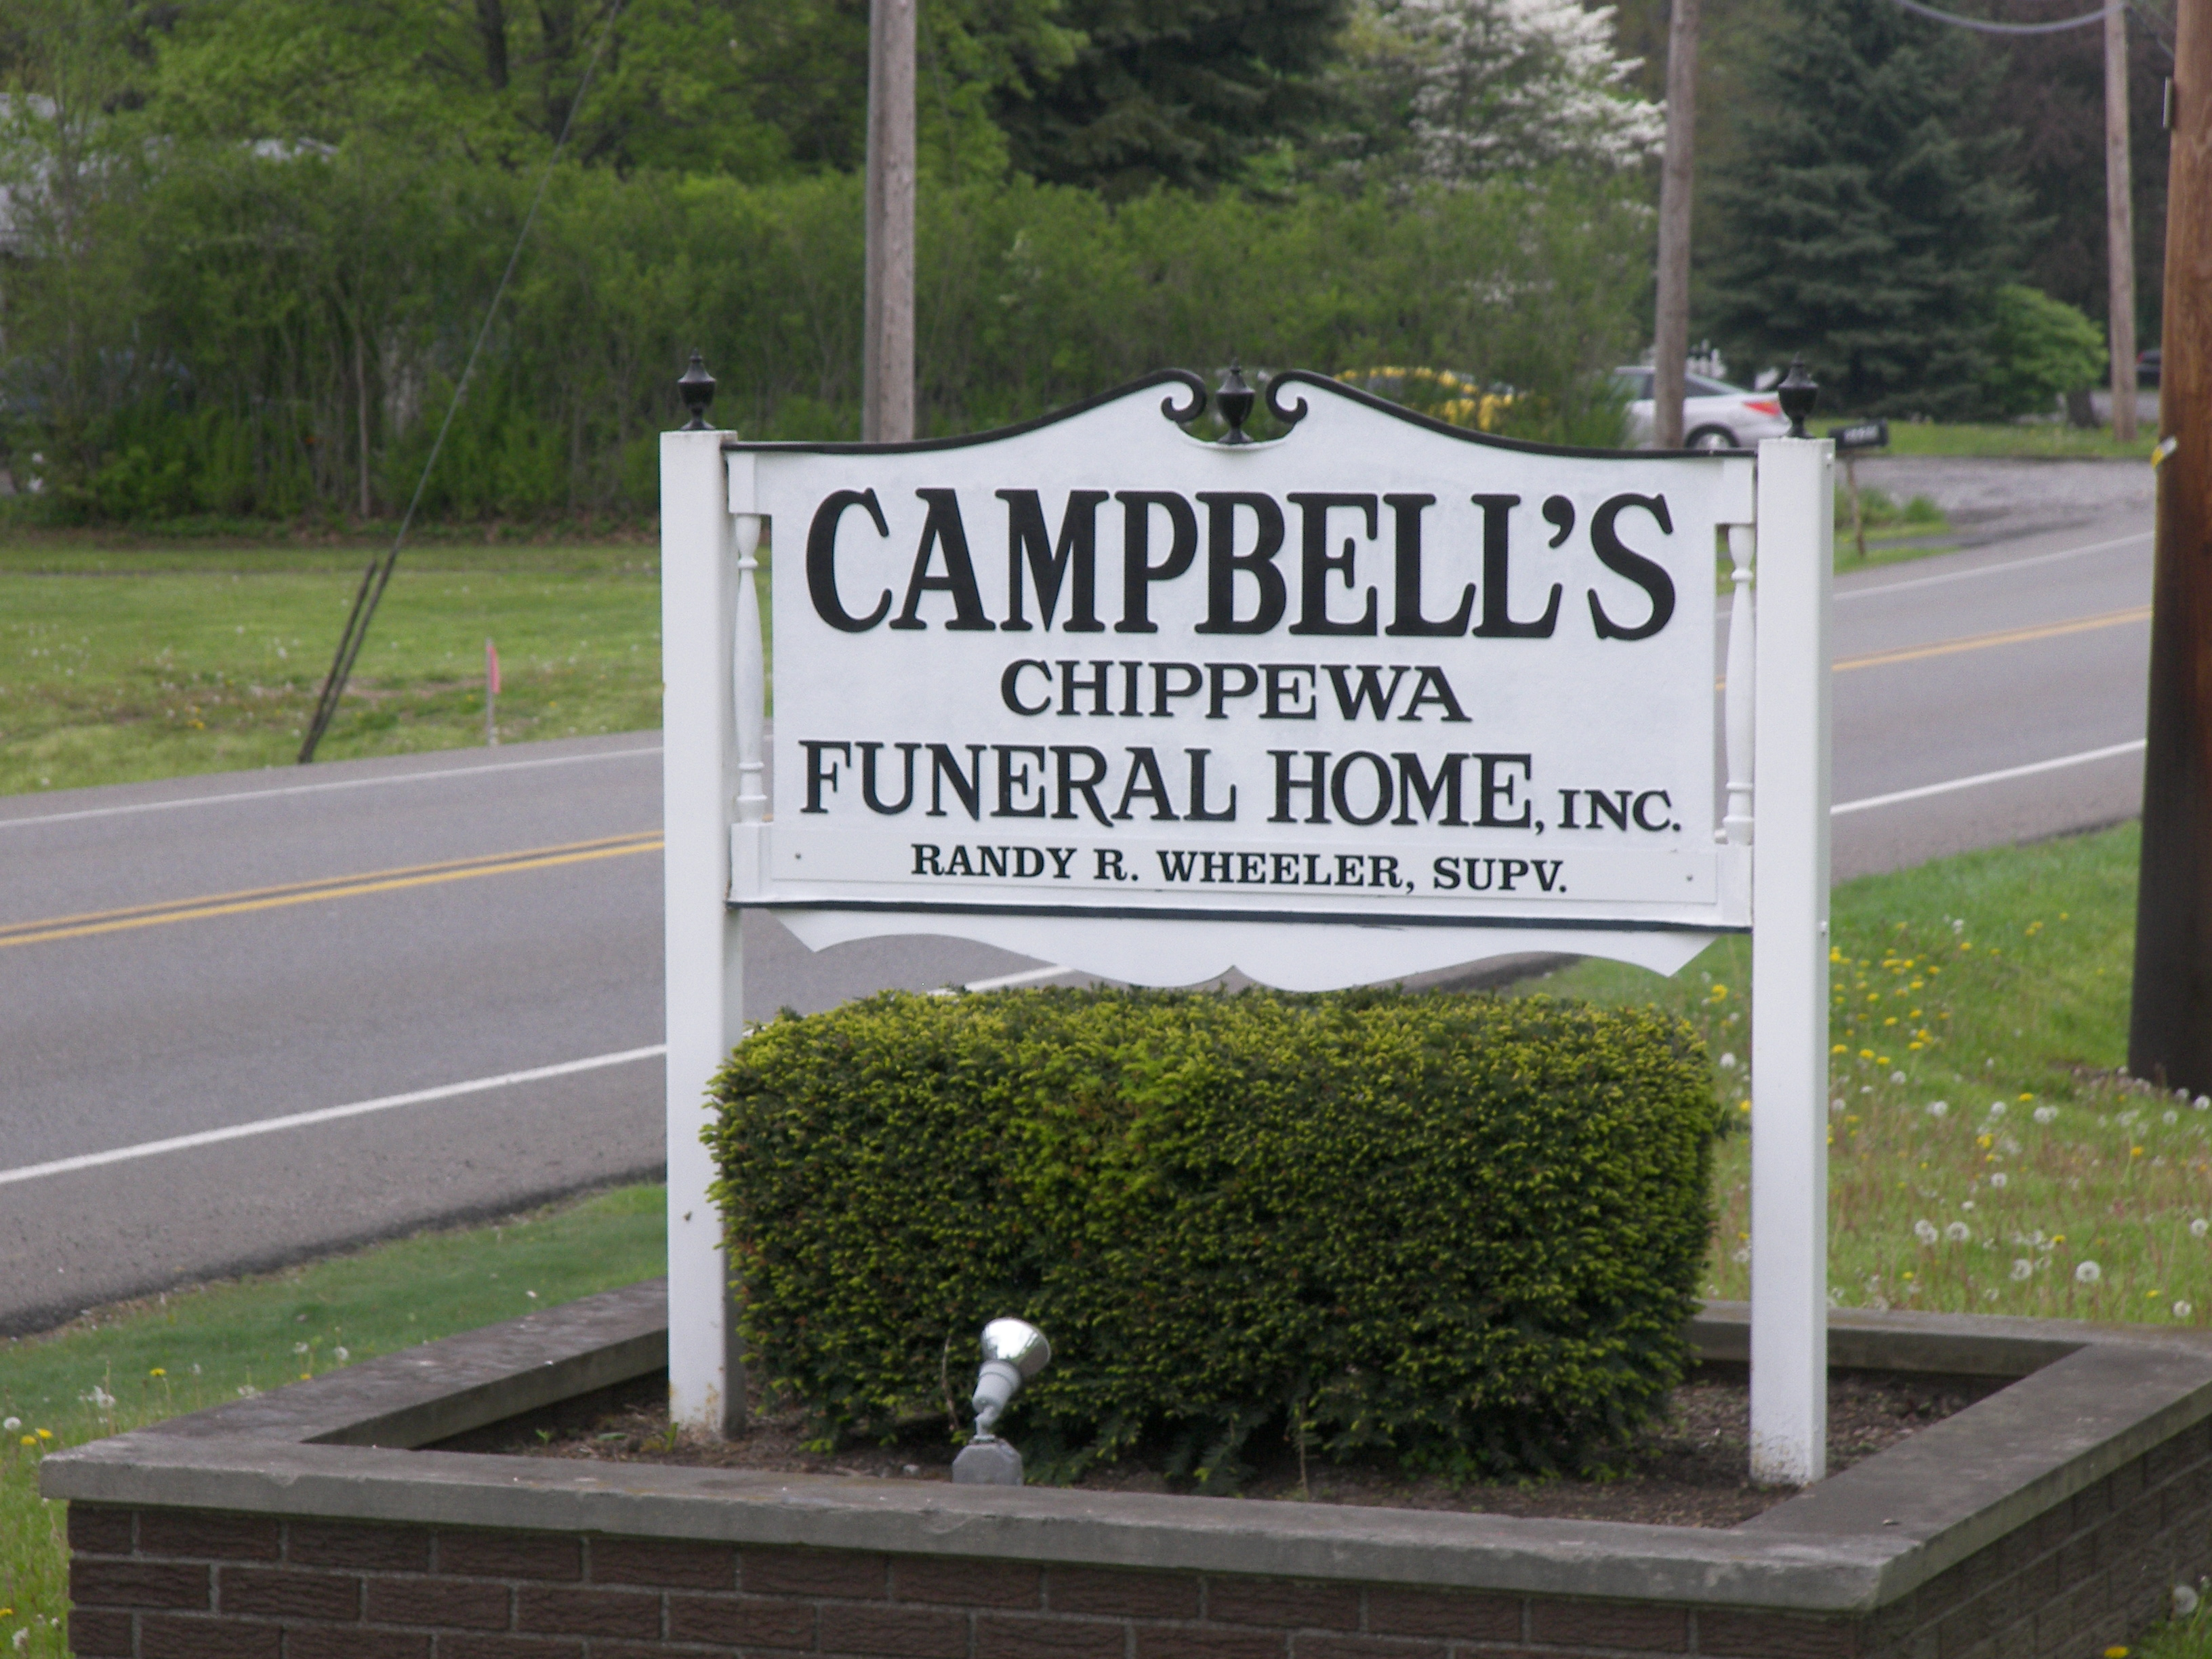 Campbell's Chippewa Funeral Home